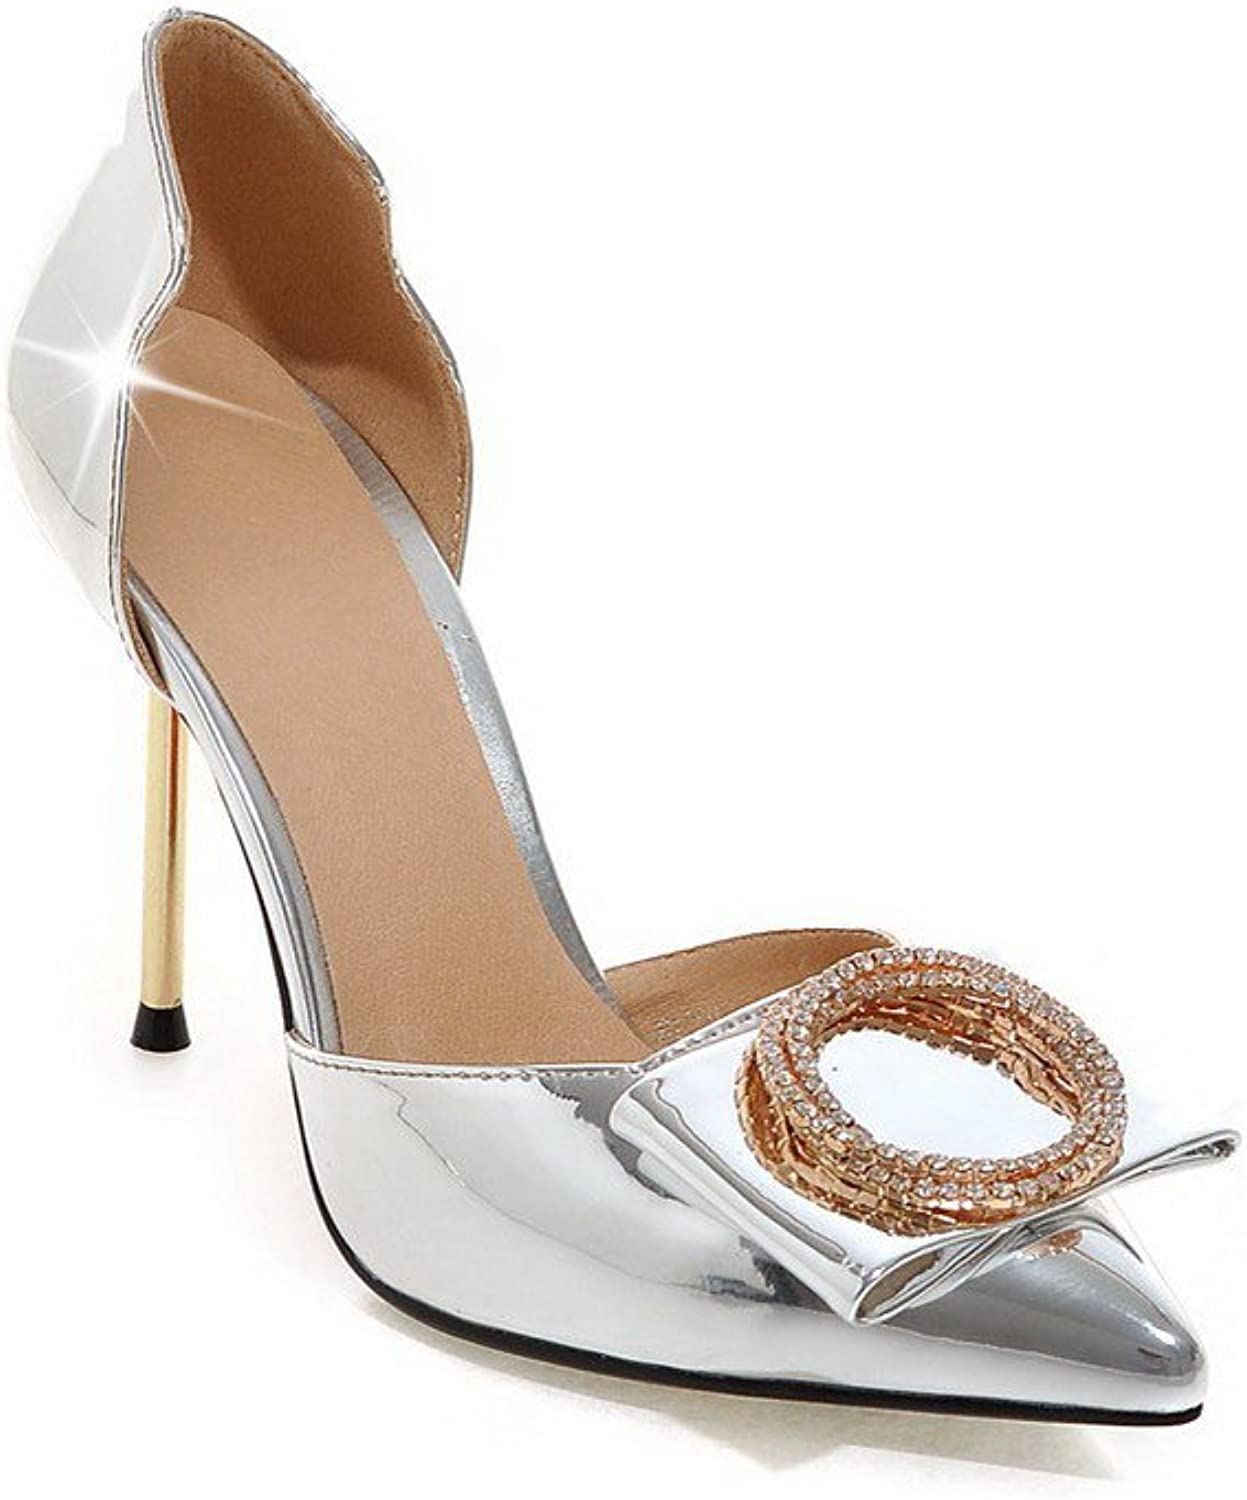 AmoonyFashion Women's High-Heels Solid Pull-on Patent Leather Pointed-Toe Sandals